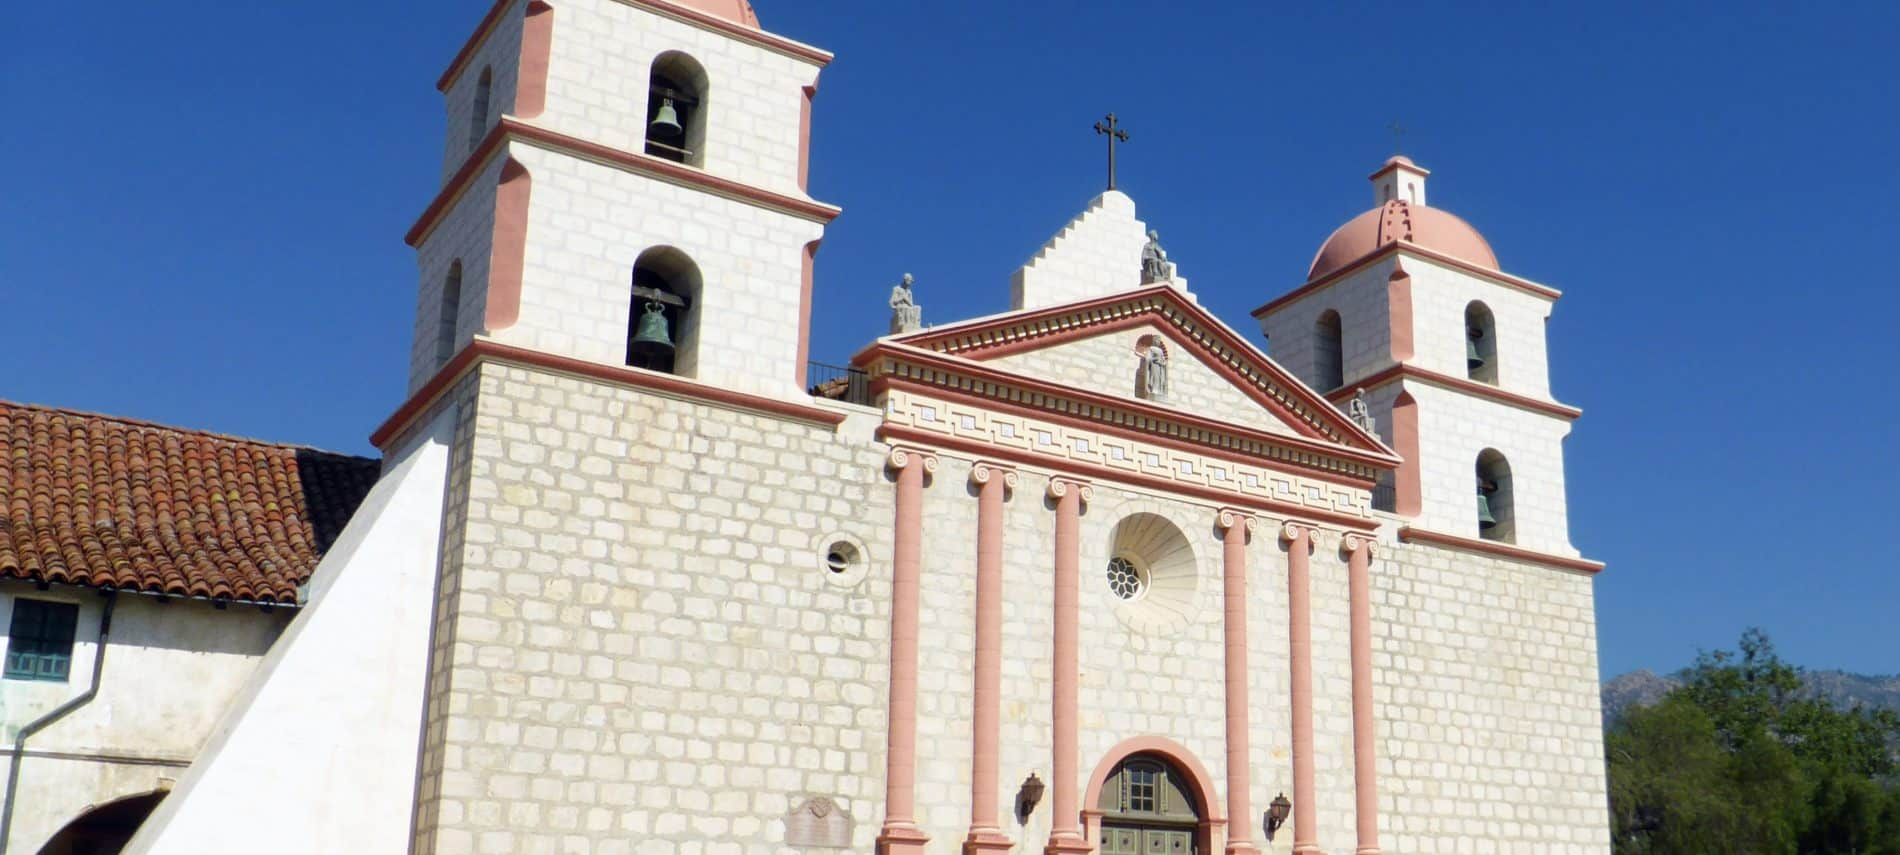 Exterior view of Santa Barbara Mission in pink and white